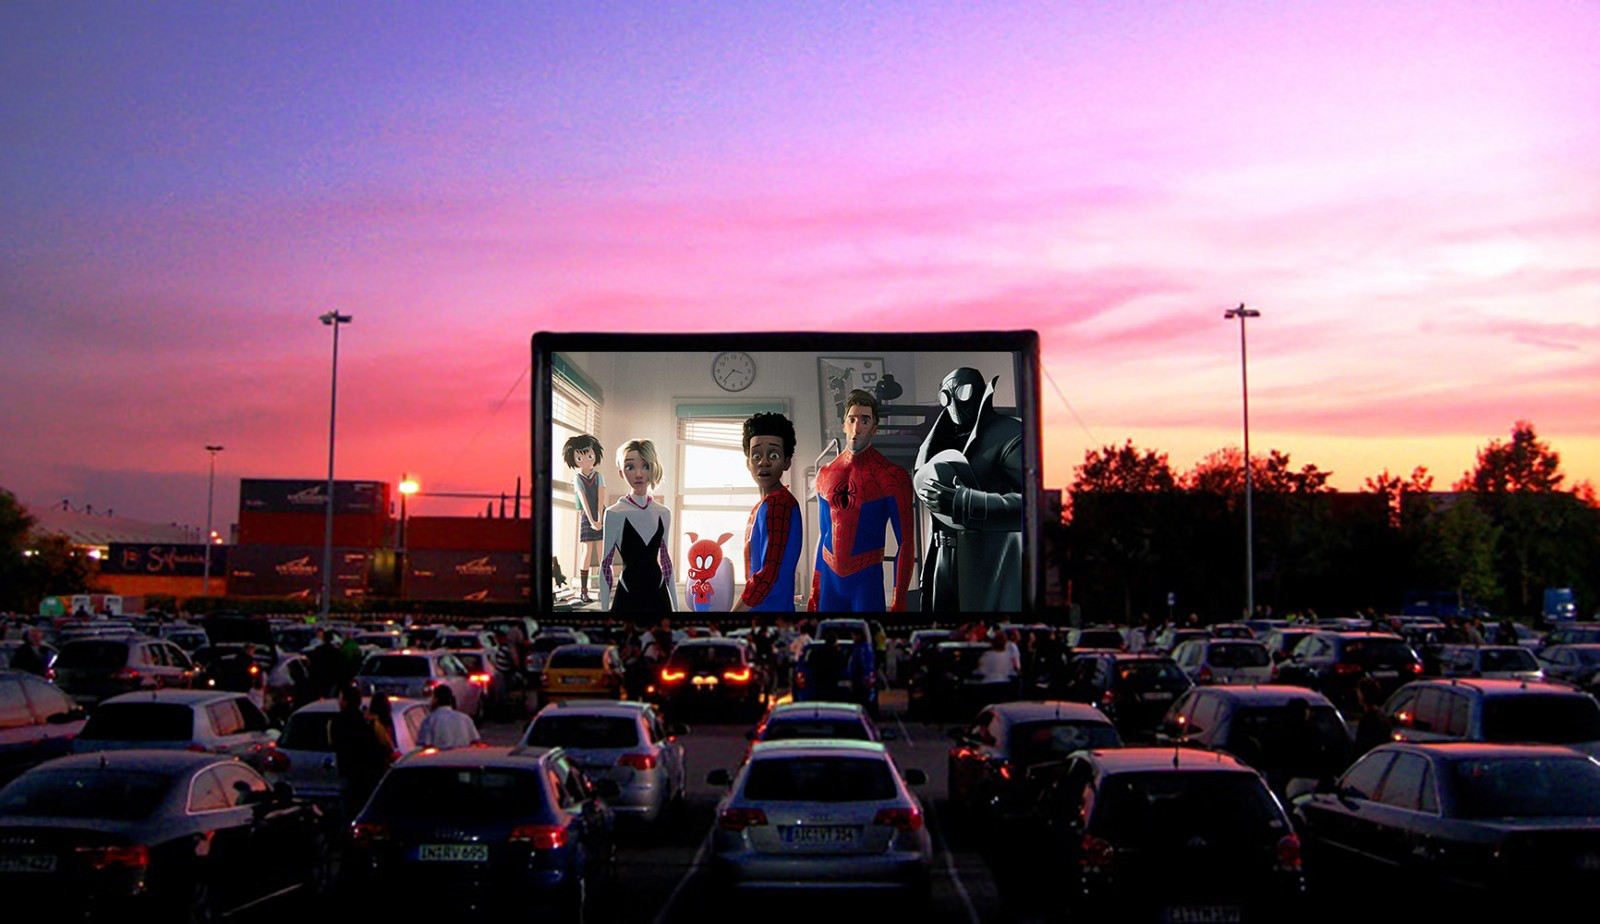 Le drive-in fait son grand retour ! festival